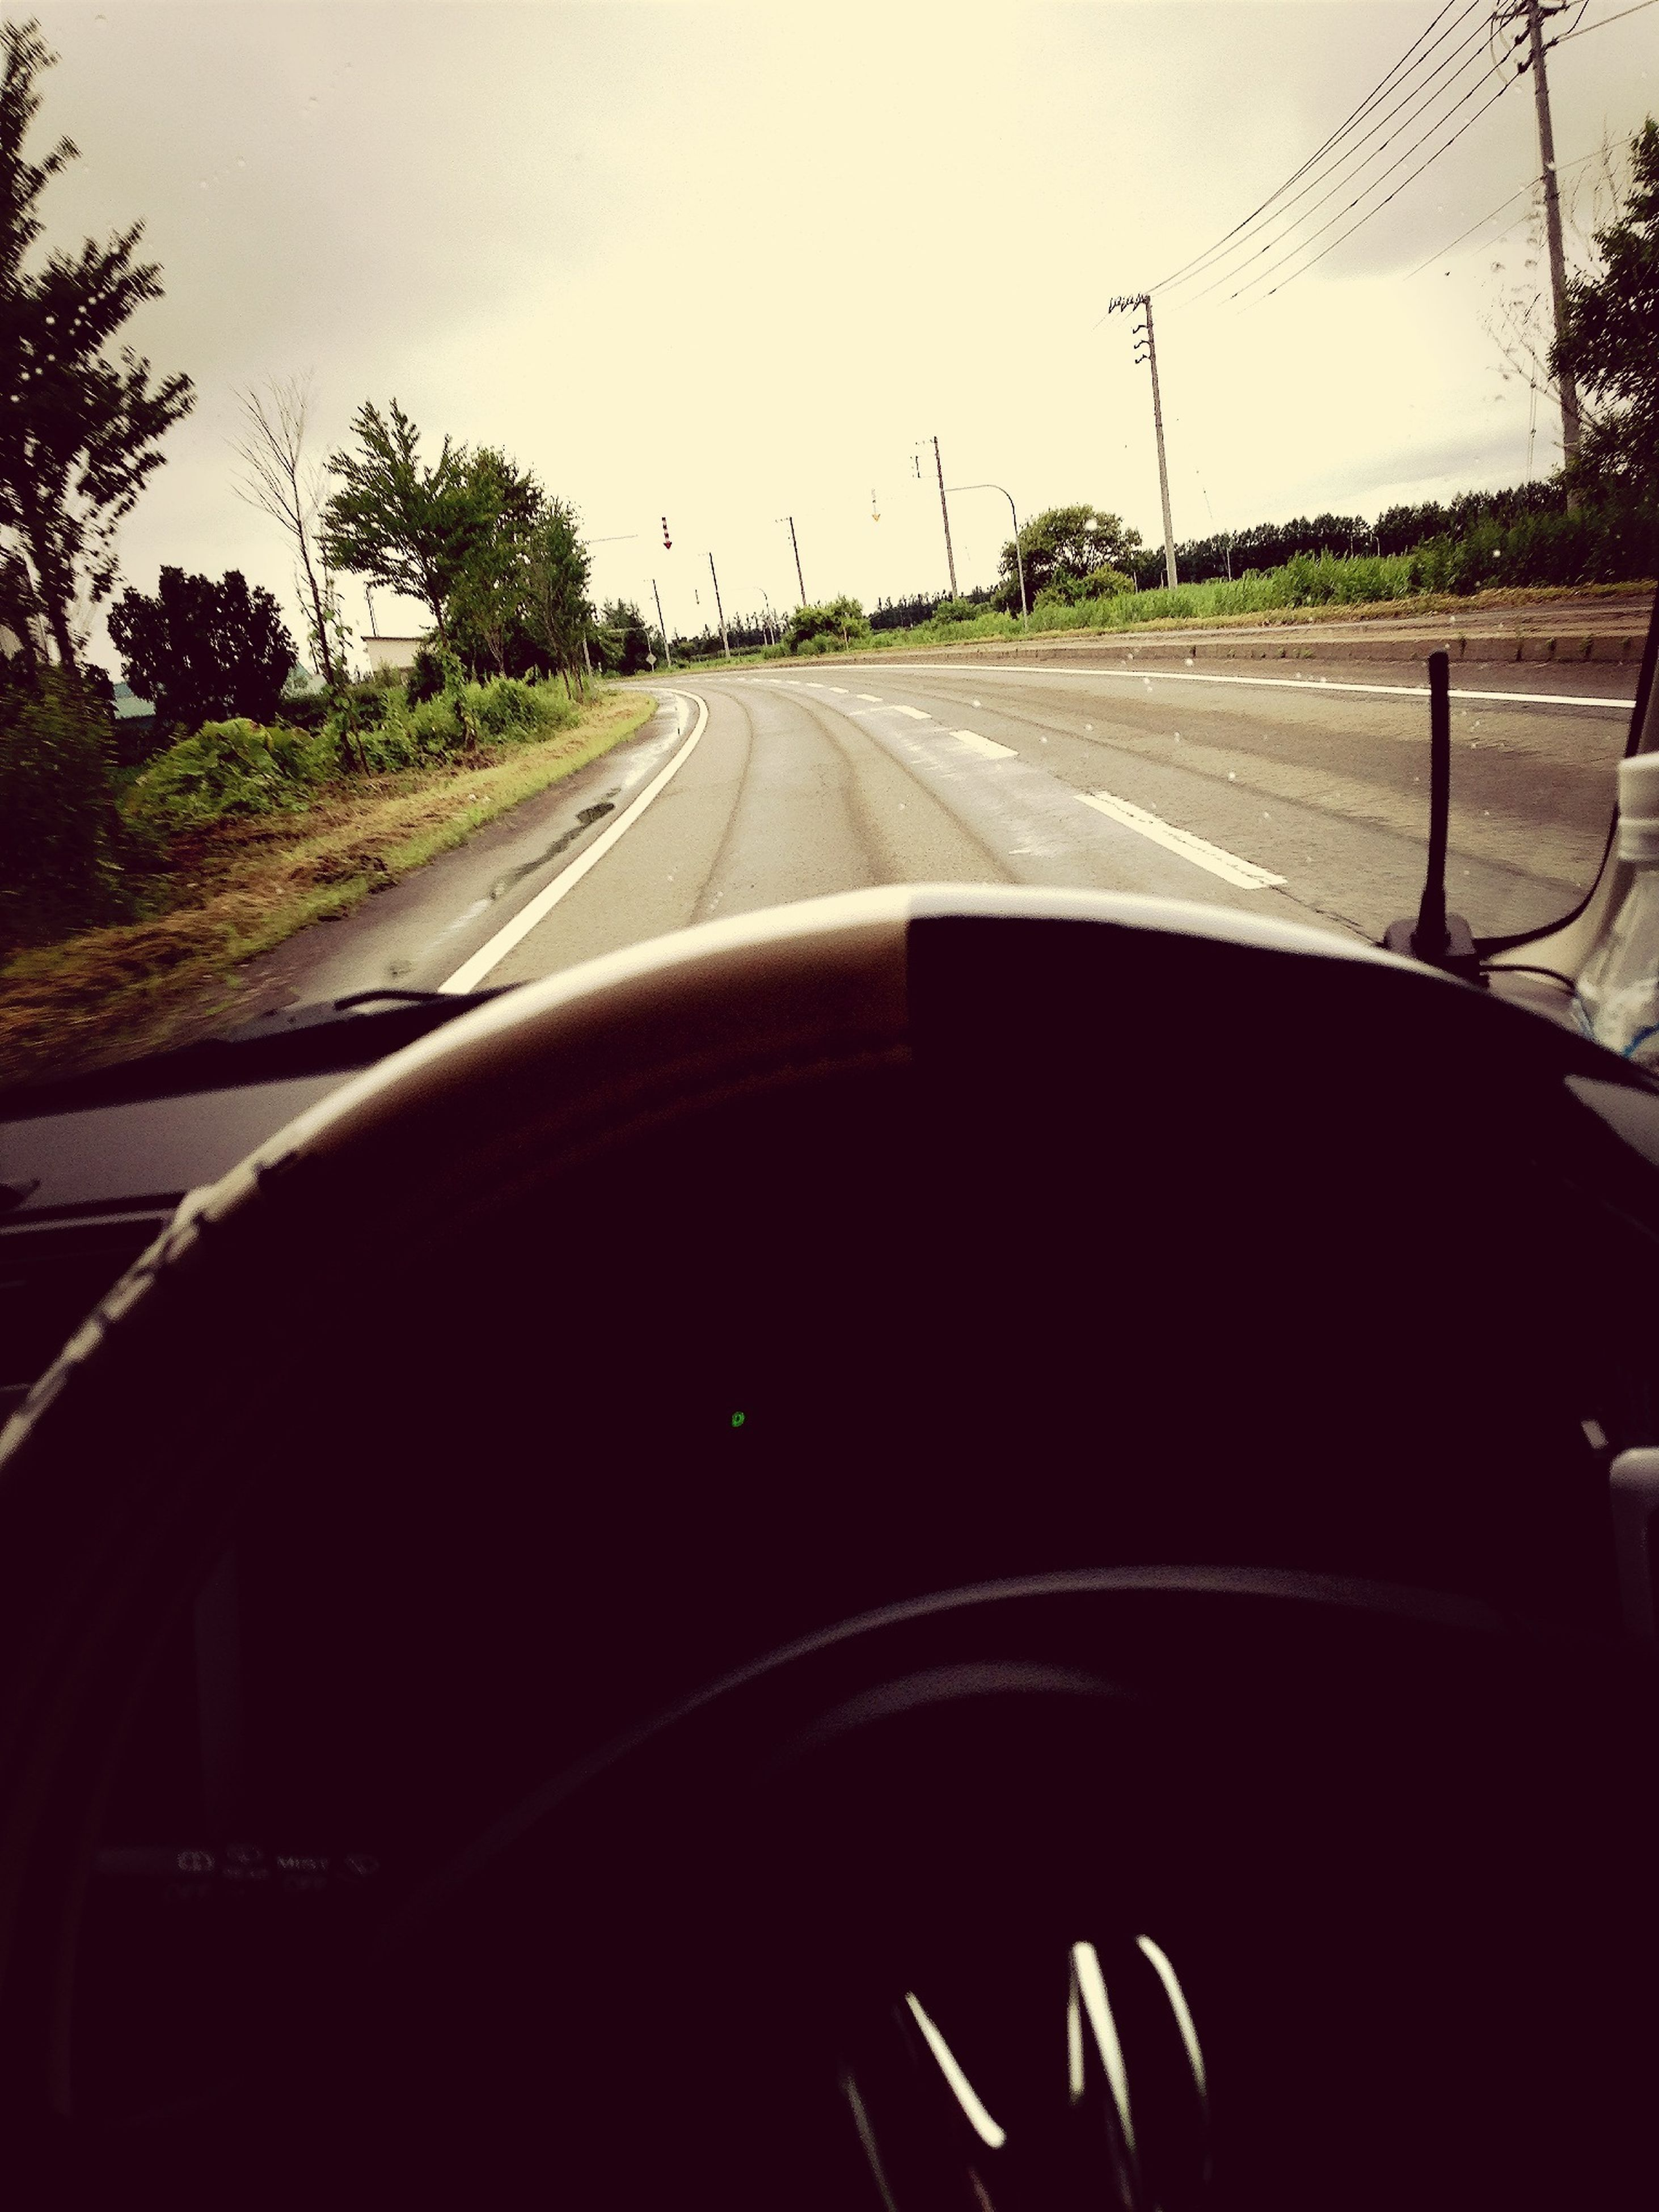 transportation, mode of transport, car, land vehicle, road, windshield, vehicle interior, road marking, the way forward, car interior, travel, diminishing perspective, on the move, part of, cropped, car point of view, tree, journey, sky, vanishing point